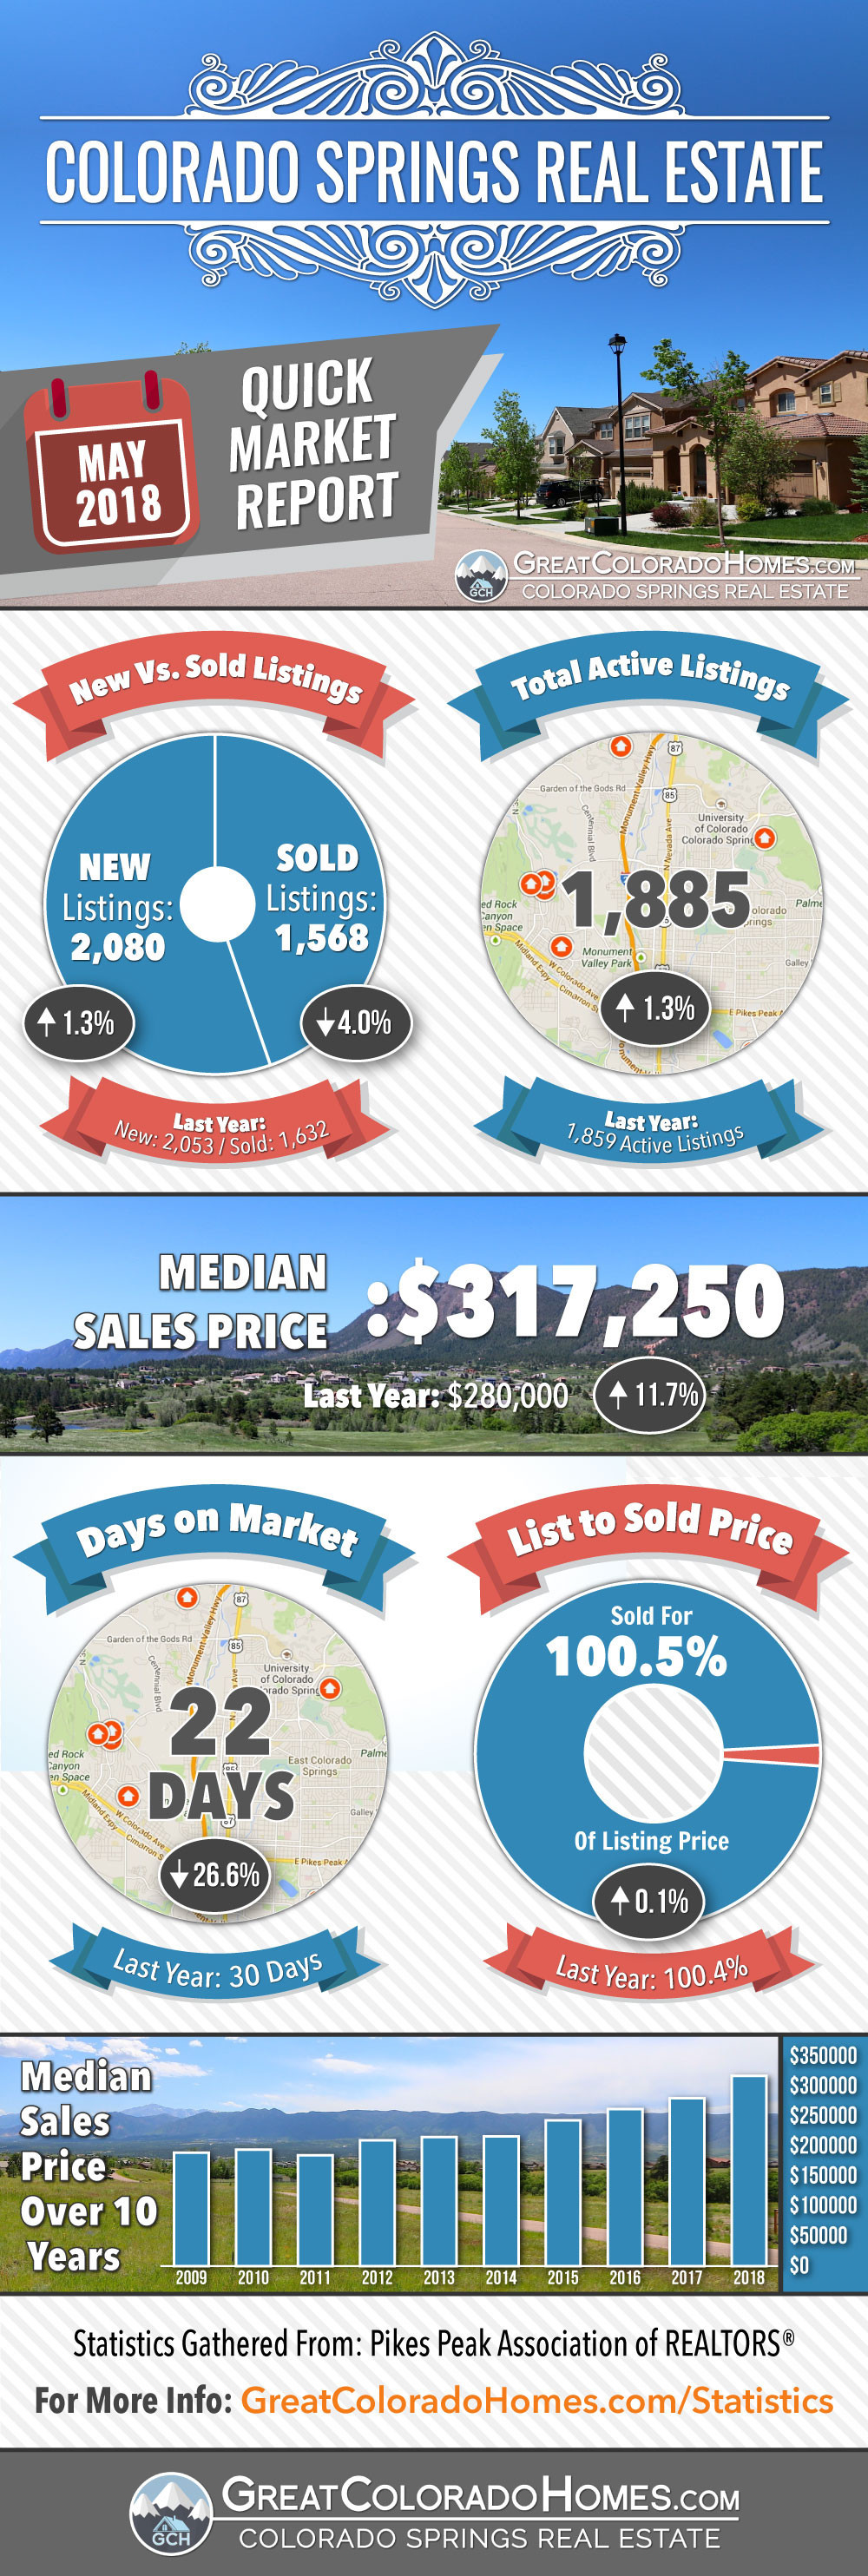 May 2018 Colorado Springs Real Estate Market Statistics Infographic